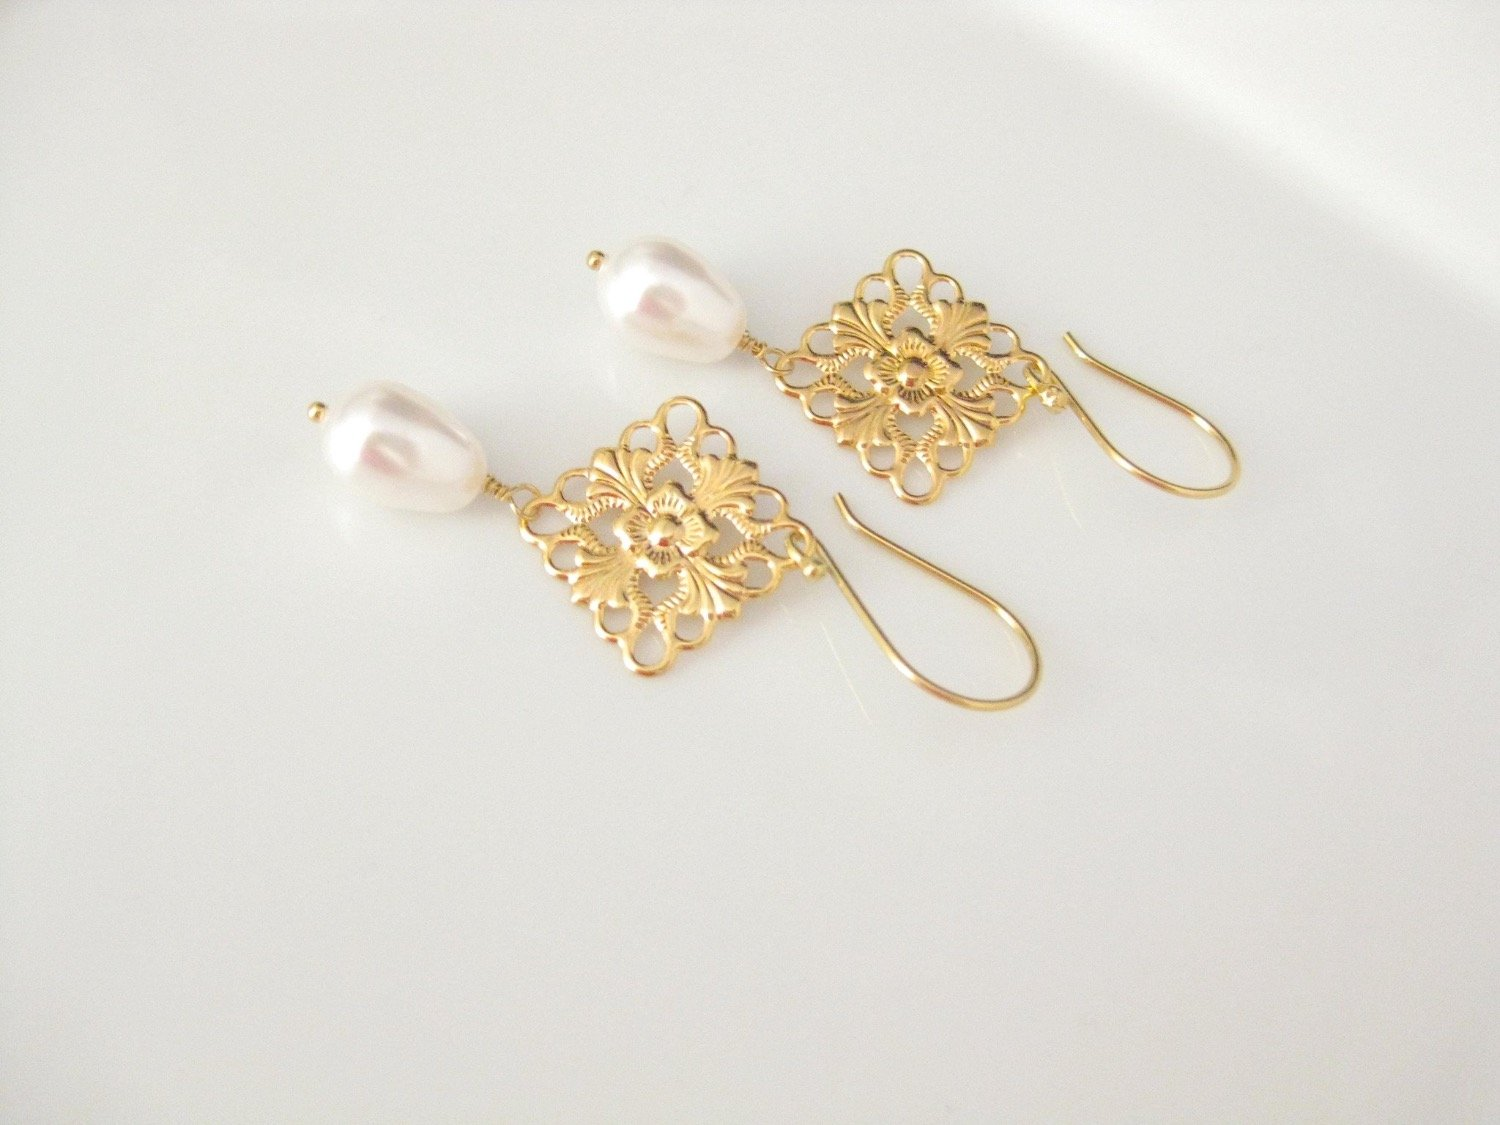 Gold and white pearl earrings bridal jewelry - Clairesbridal - 2